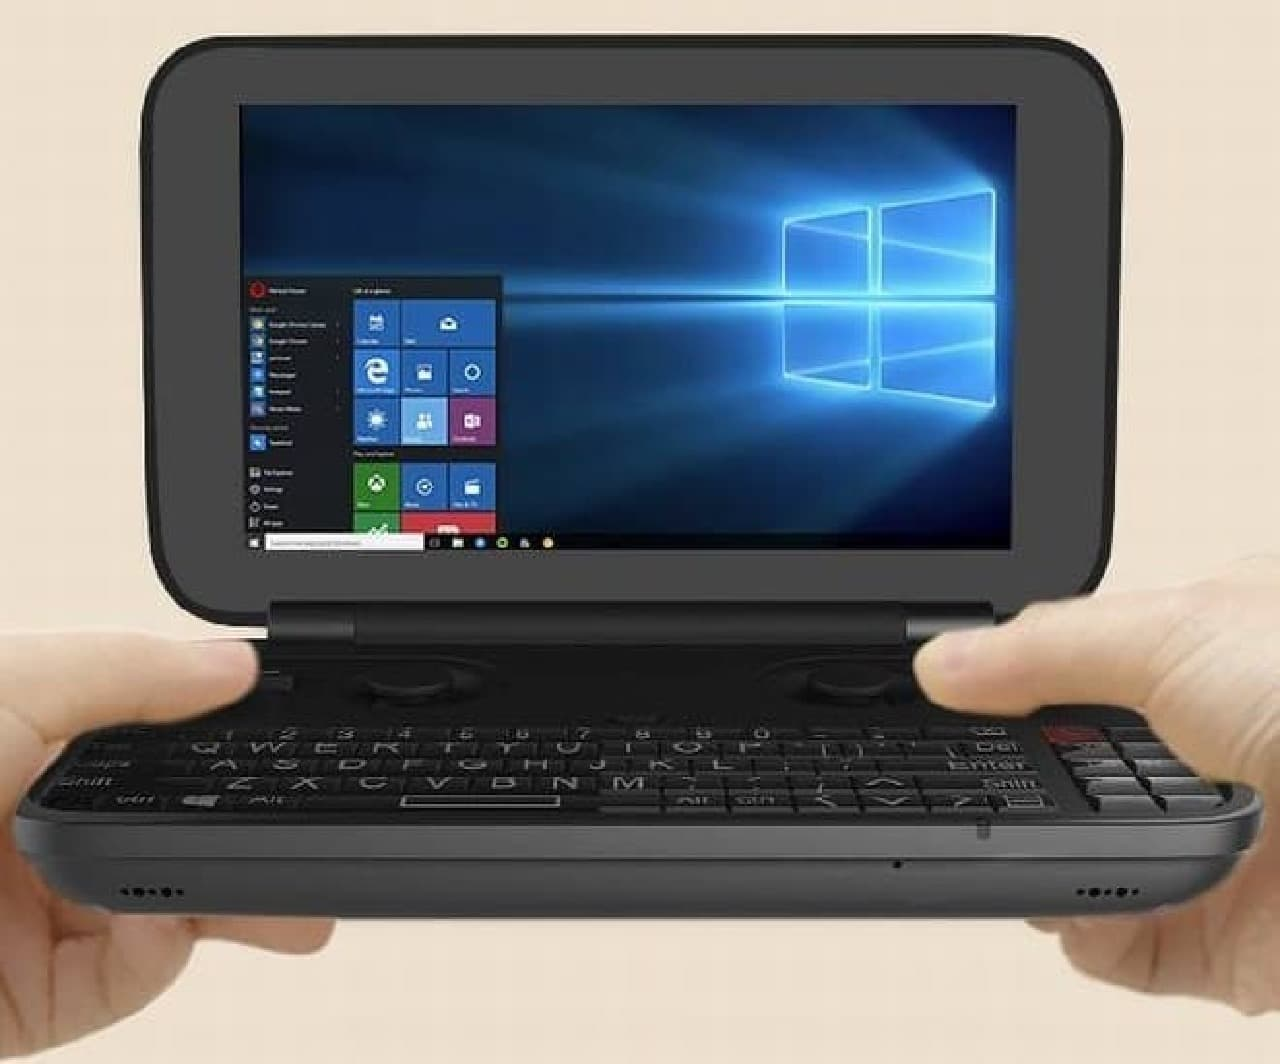 ポケットに入るWindows 10 PC「GPD Pocket」